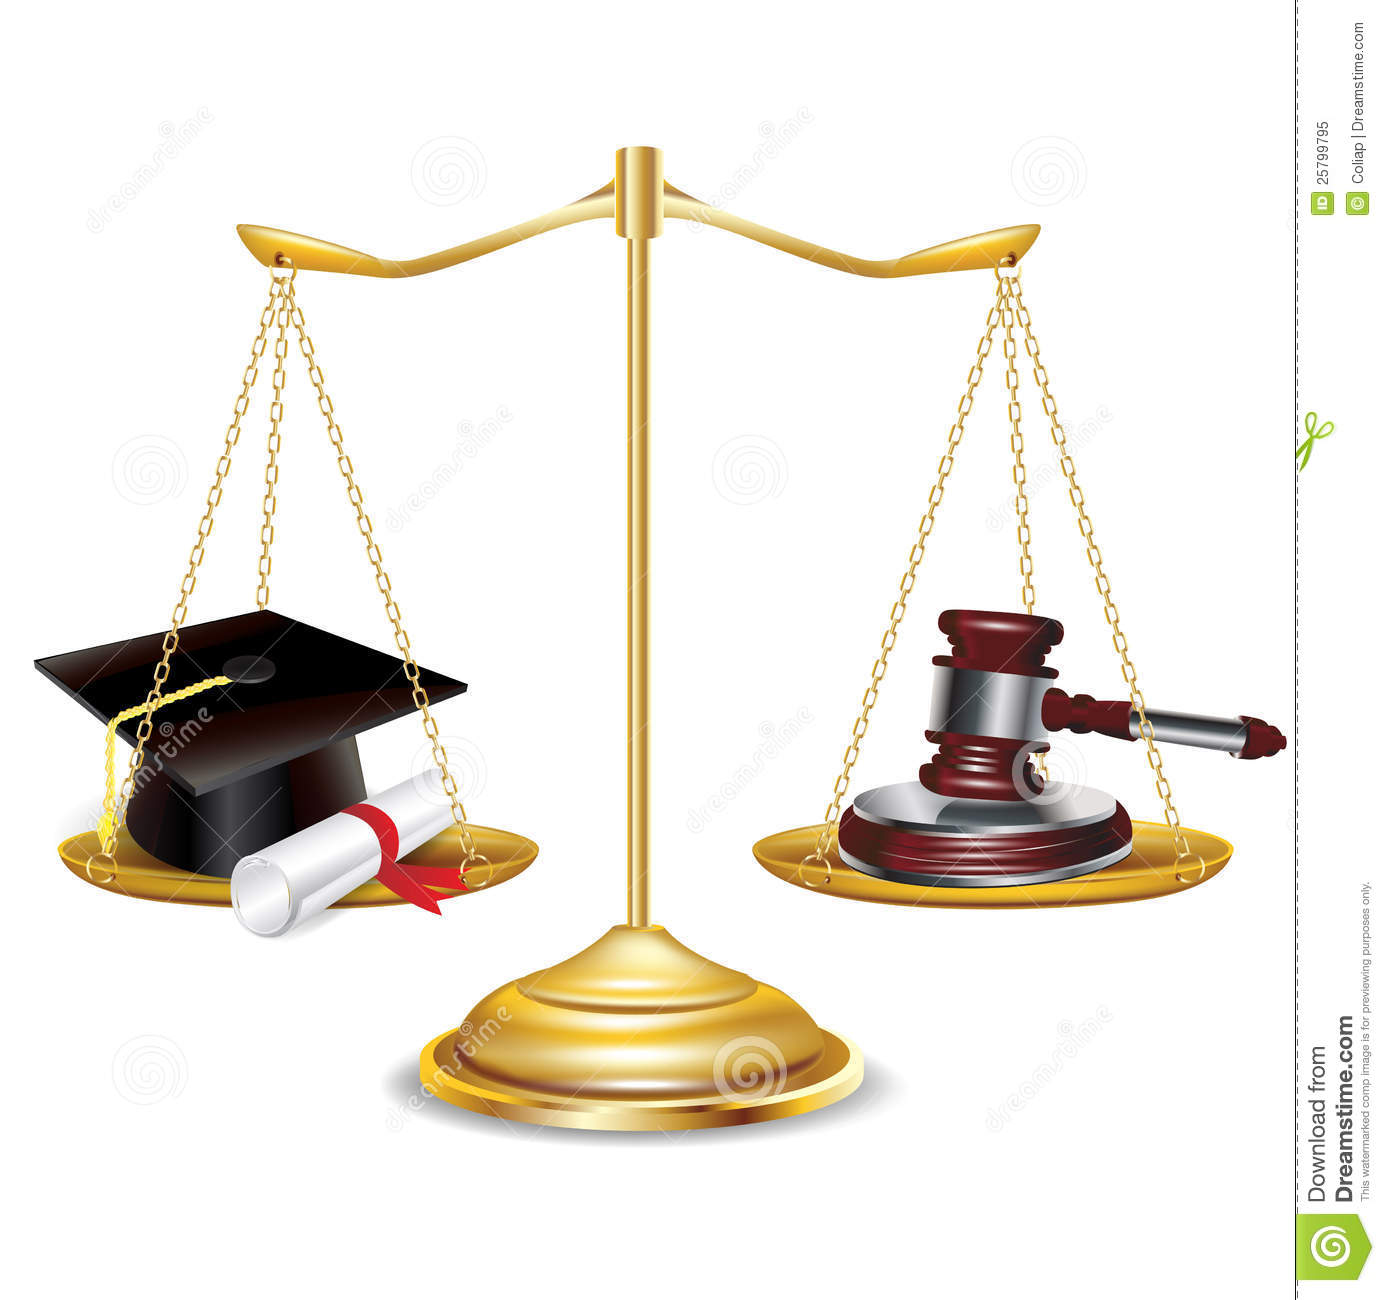 law scale and gavel - photo #24